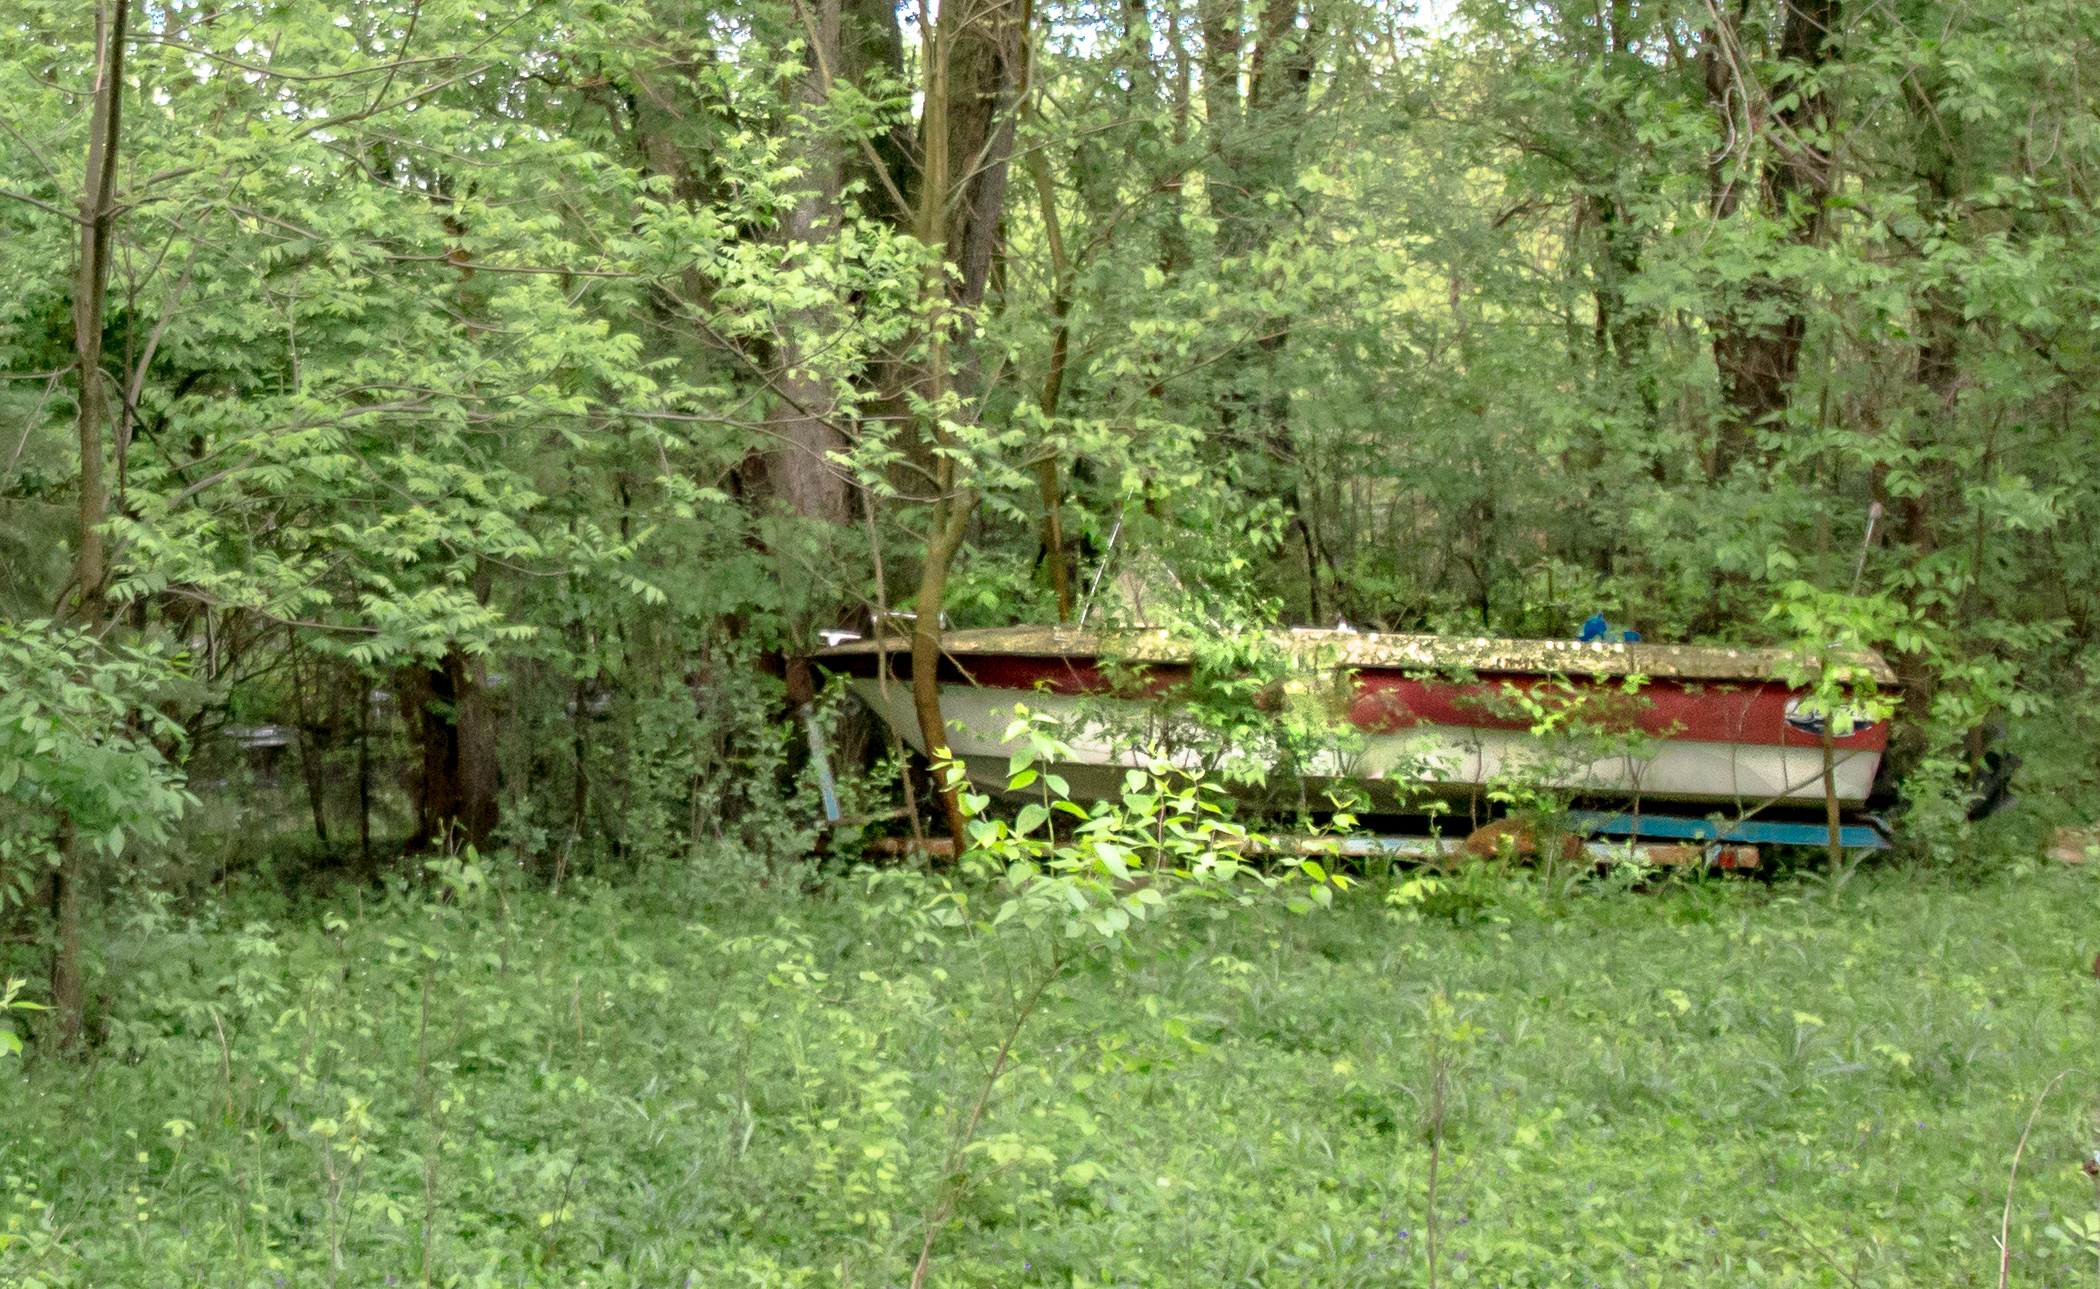 Boats. Everywhere. Walk up the gravel driveway: boat. Go a little bit more: 2 more boats.